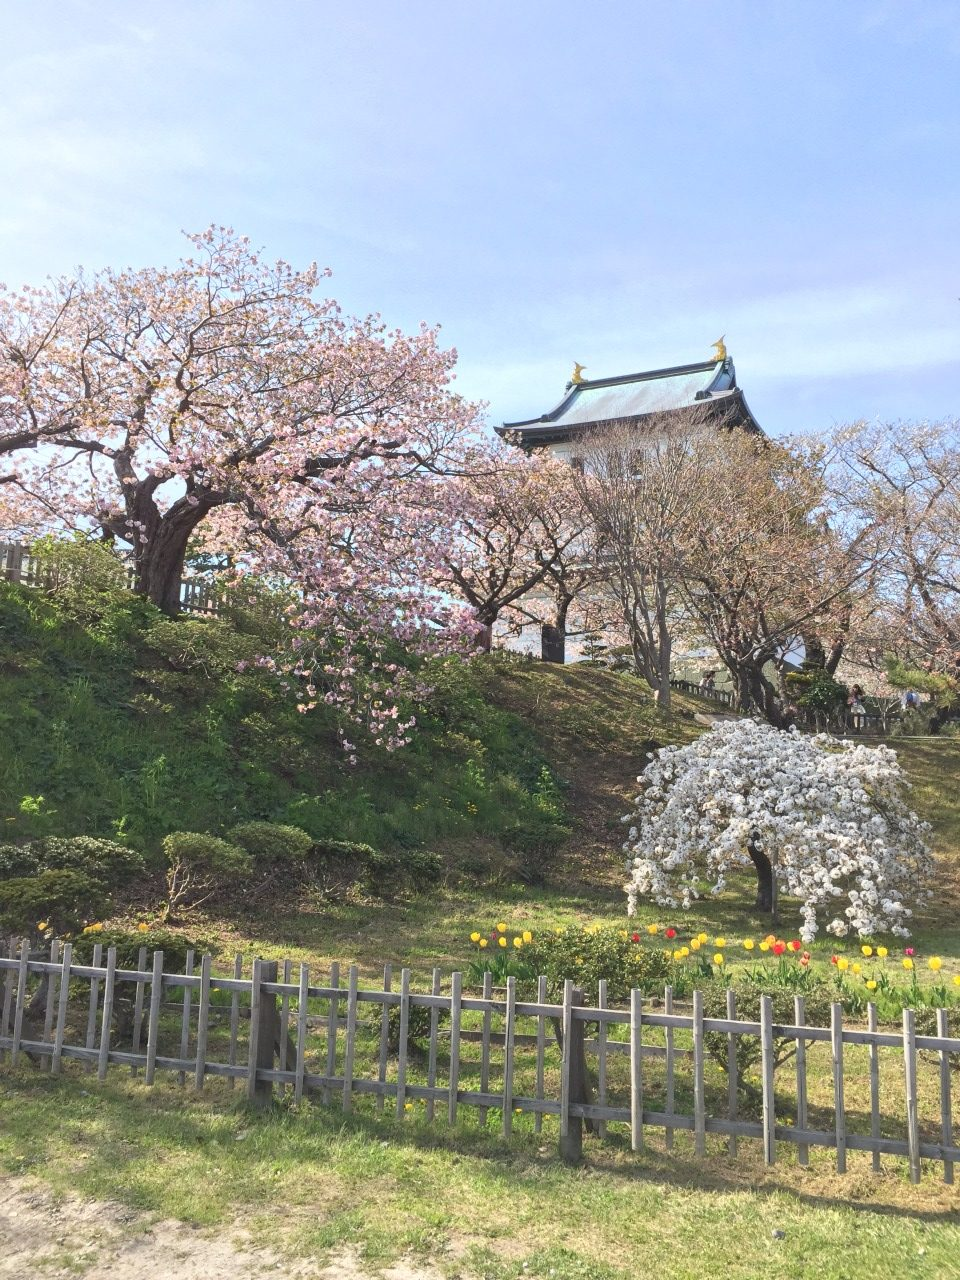 Cherry blossoms in full bloom at Matsumae Castle